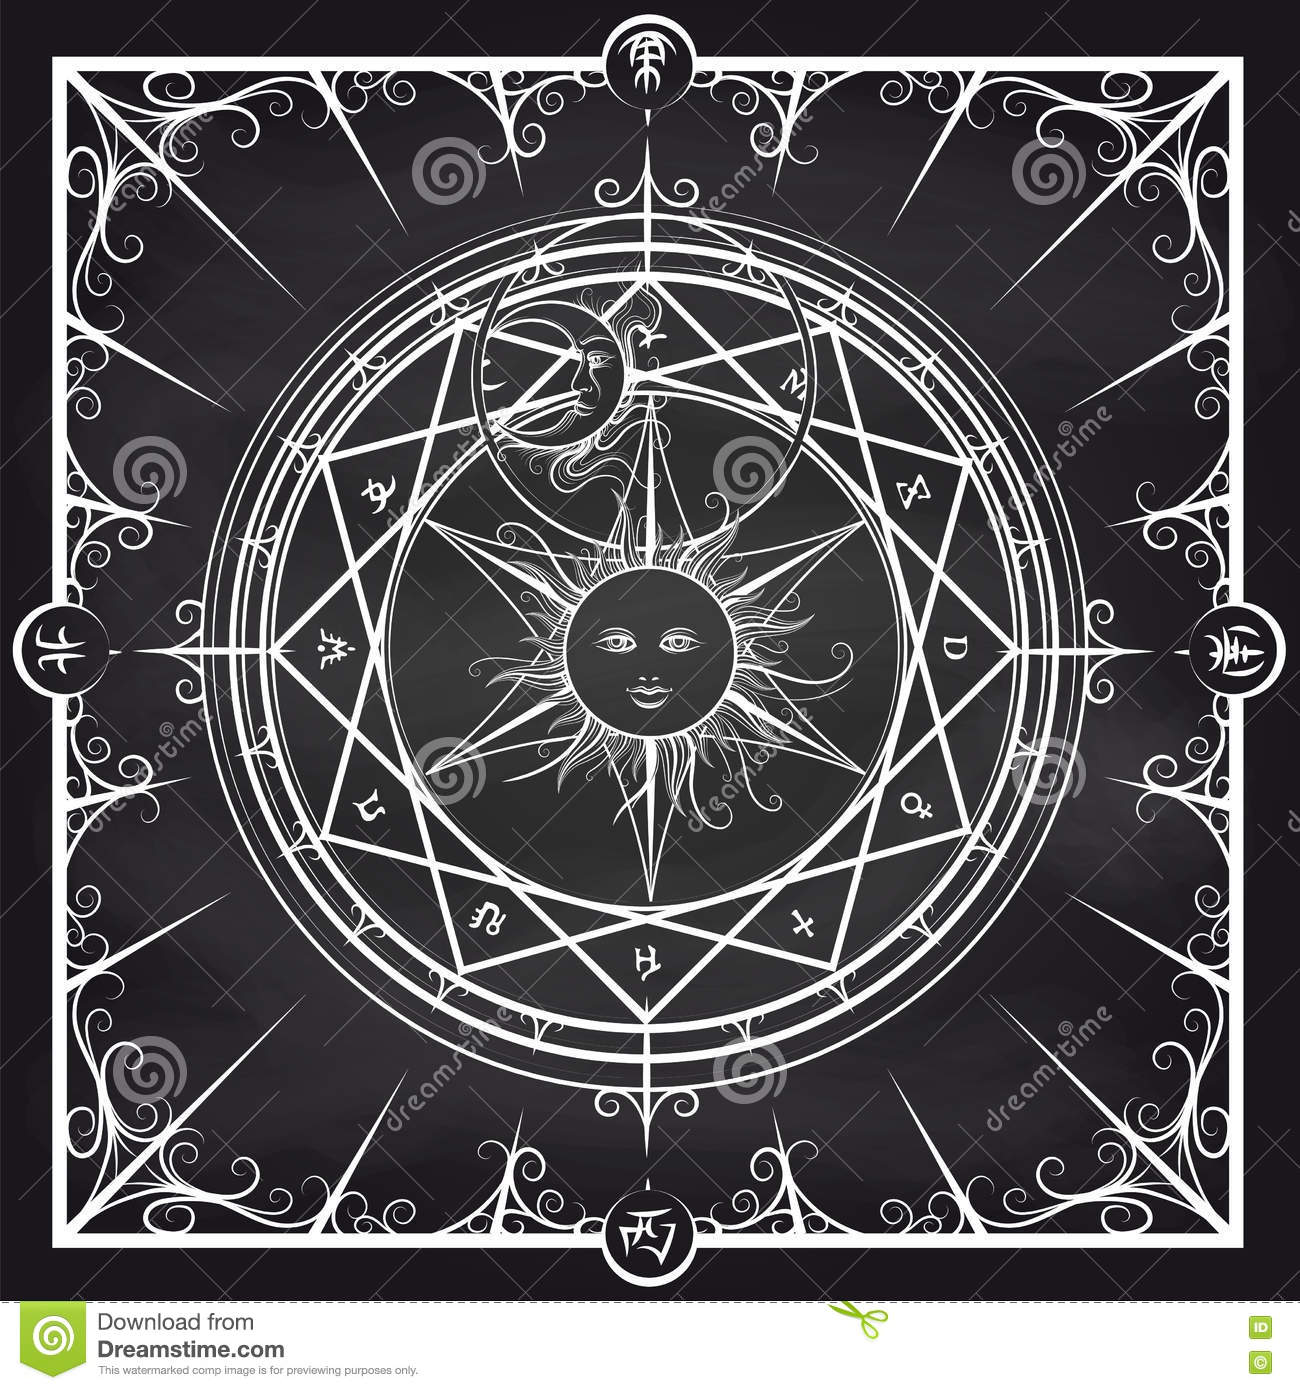 Alchemy magic circle on chalkboard background